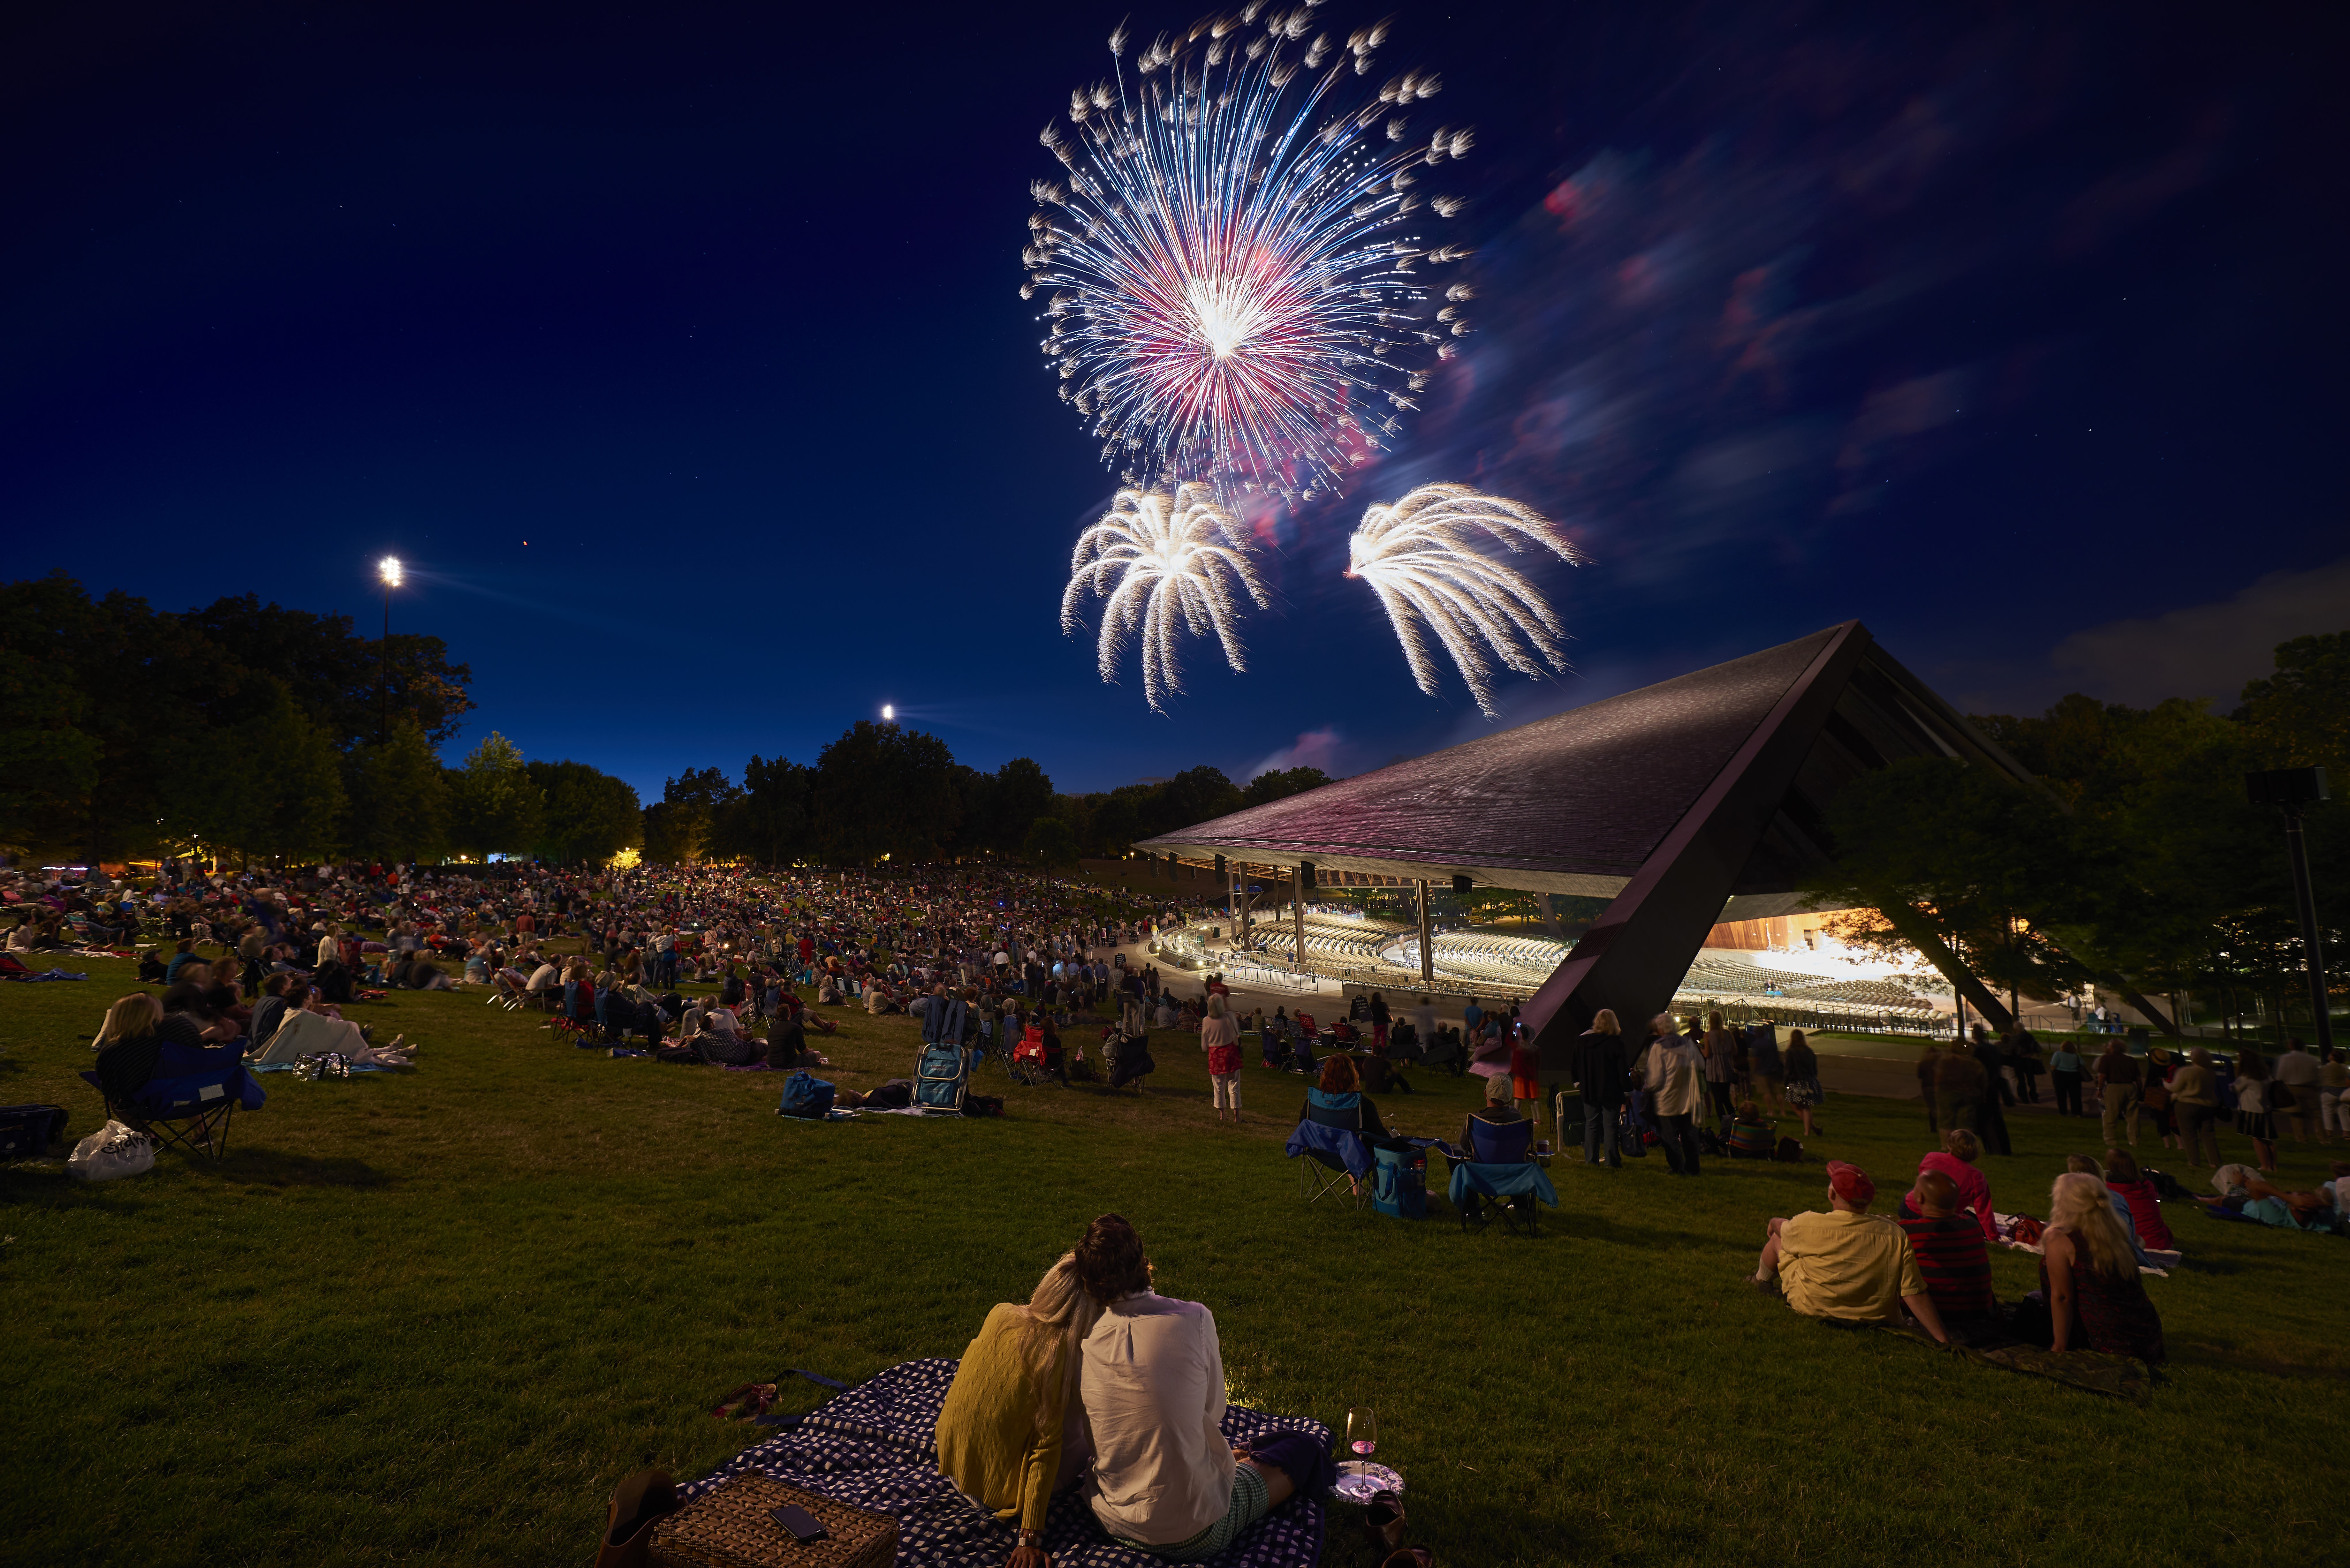 documentary about blossom music center to air on wviz/pbs next month